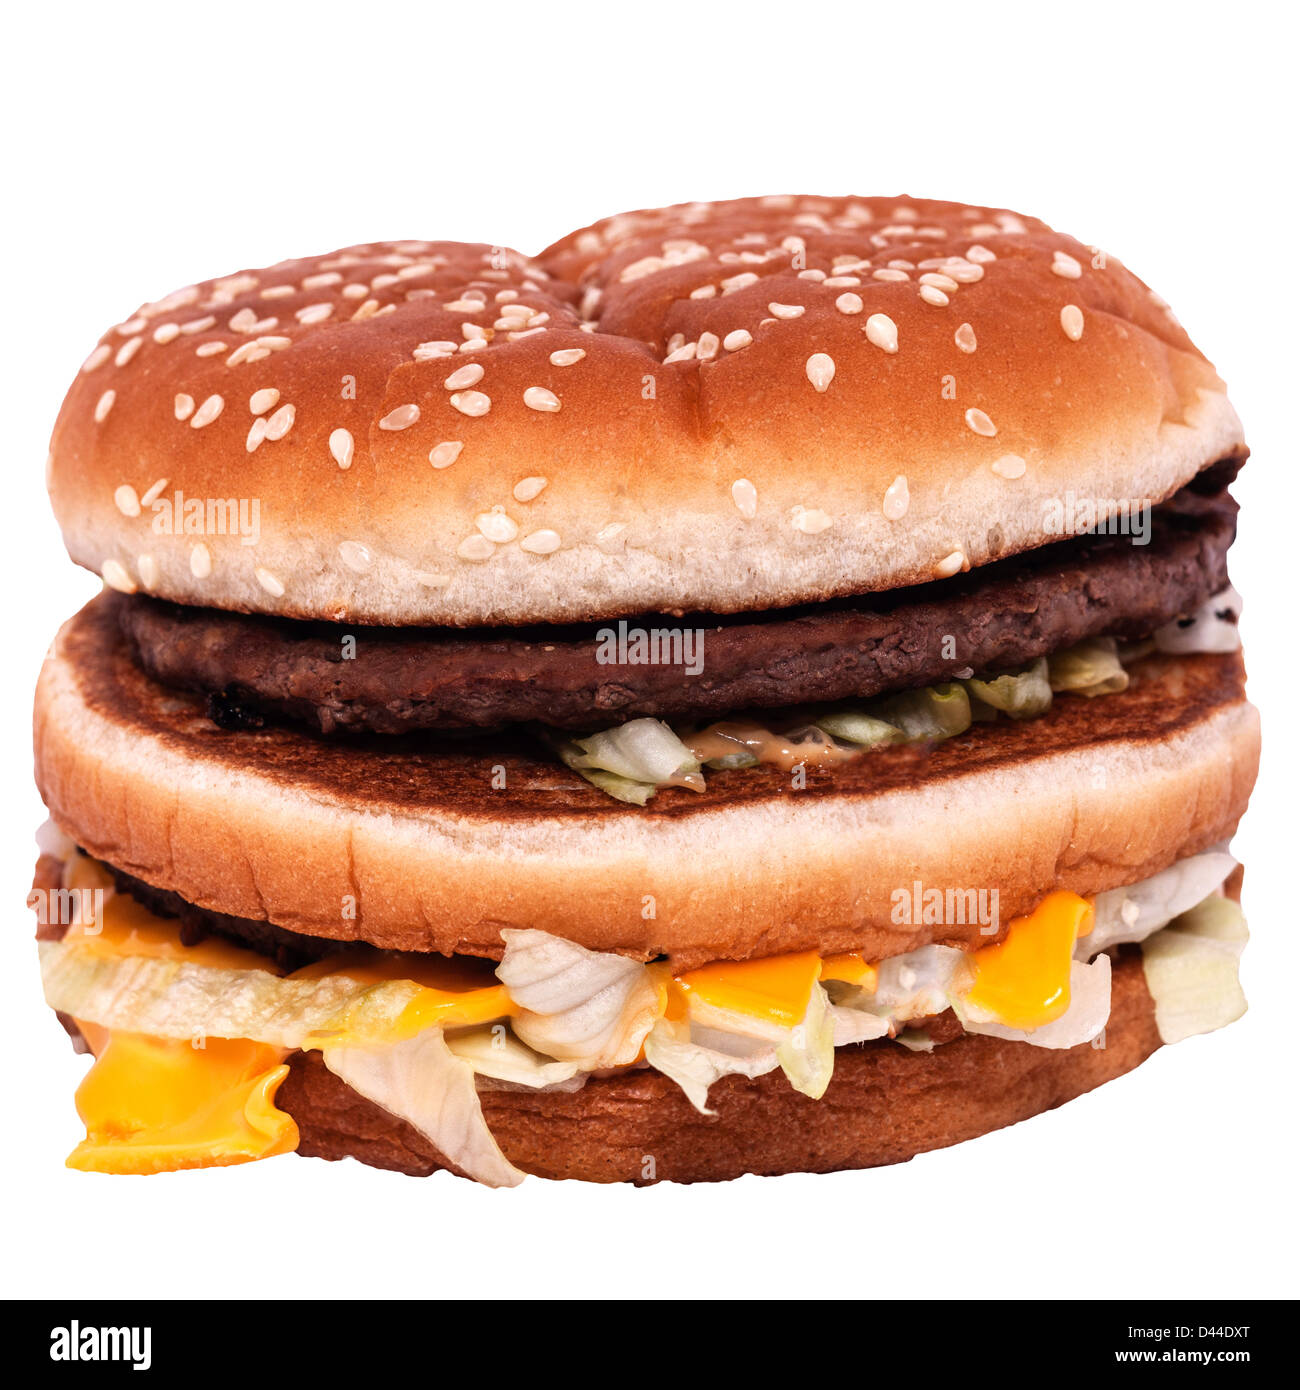 A Mcdonalds Big Mac burger on a white background - Stock Image